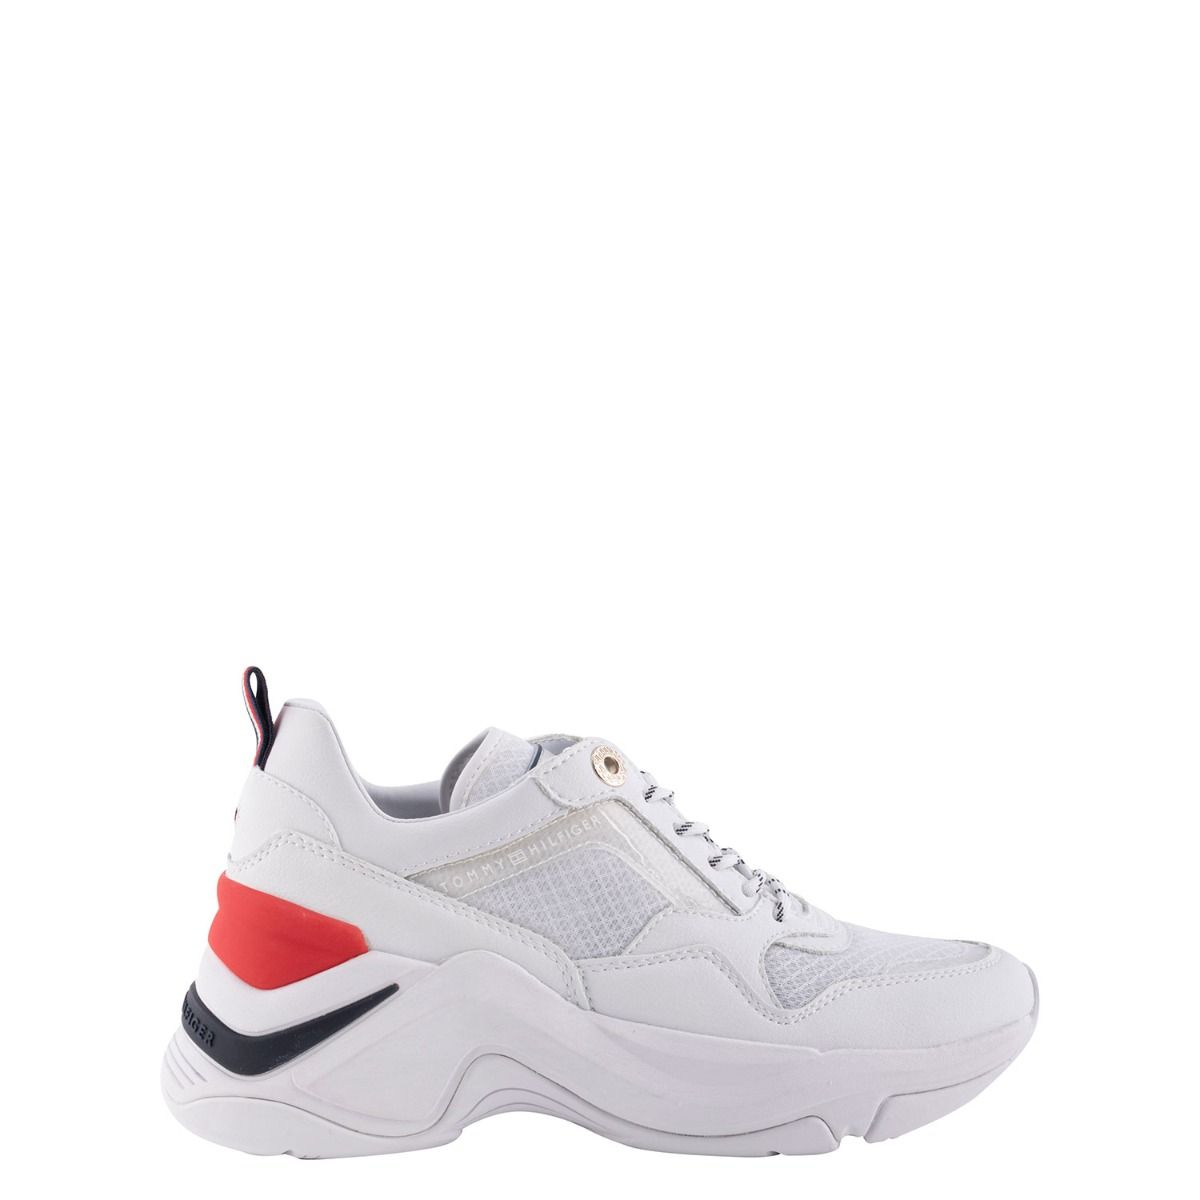 Tommy Hilfiger sneakers FW0FW04704